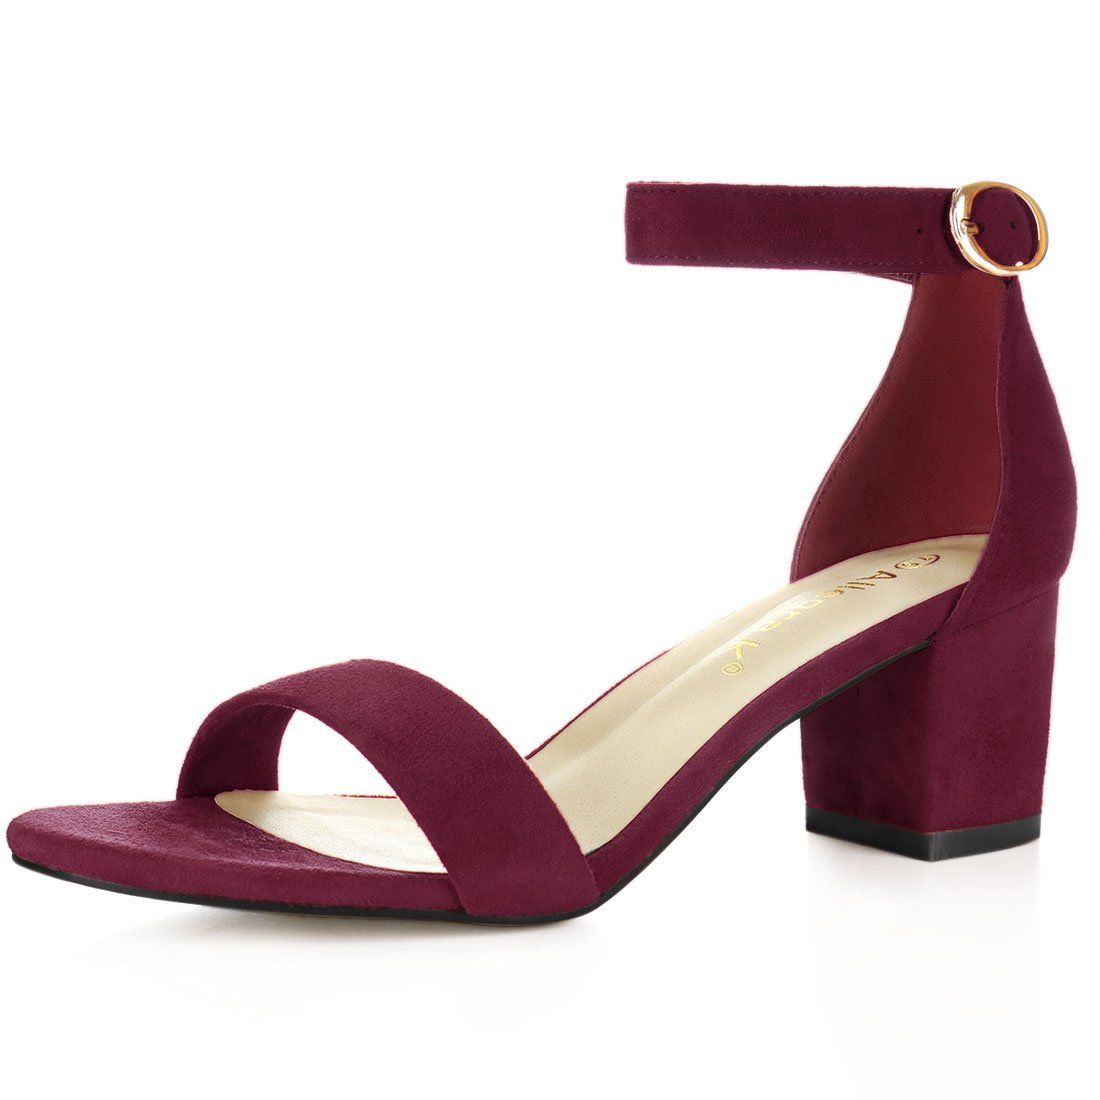 Allegra K Women's Open Toe Mid Block Heel Ankle Strap Sandals (Size US 6) Burgundy by Allegra K